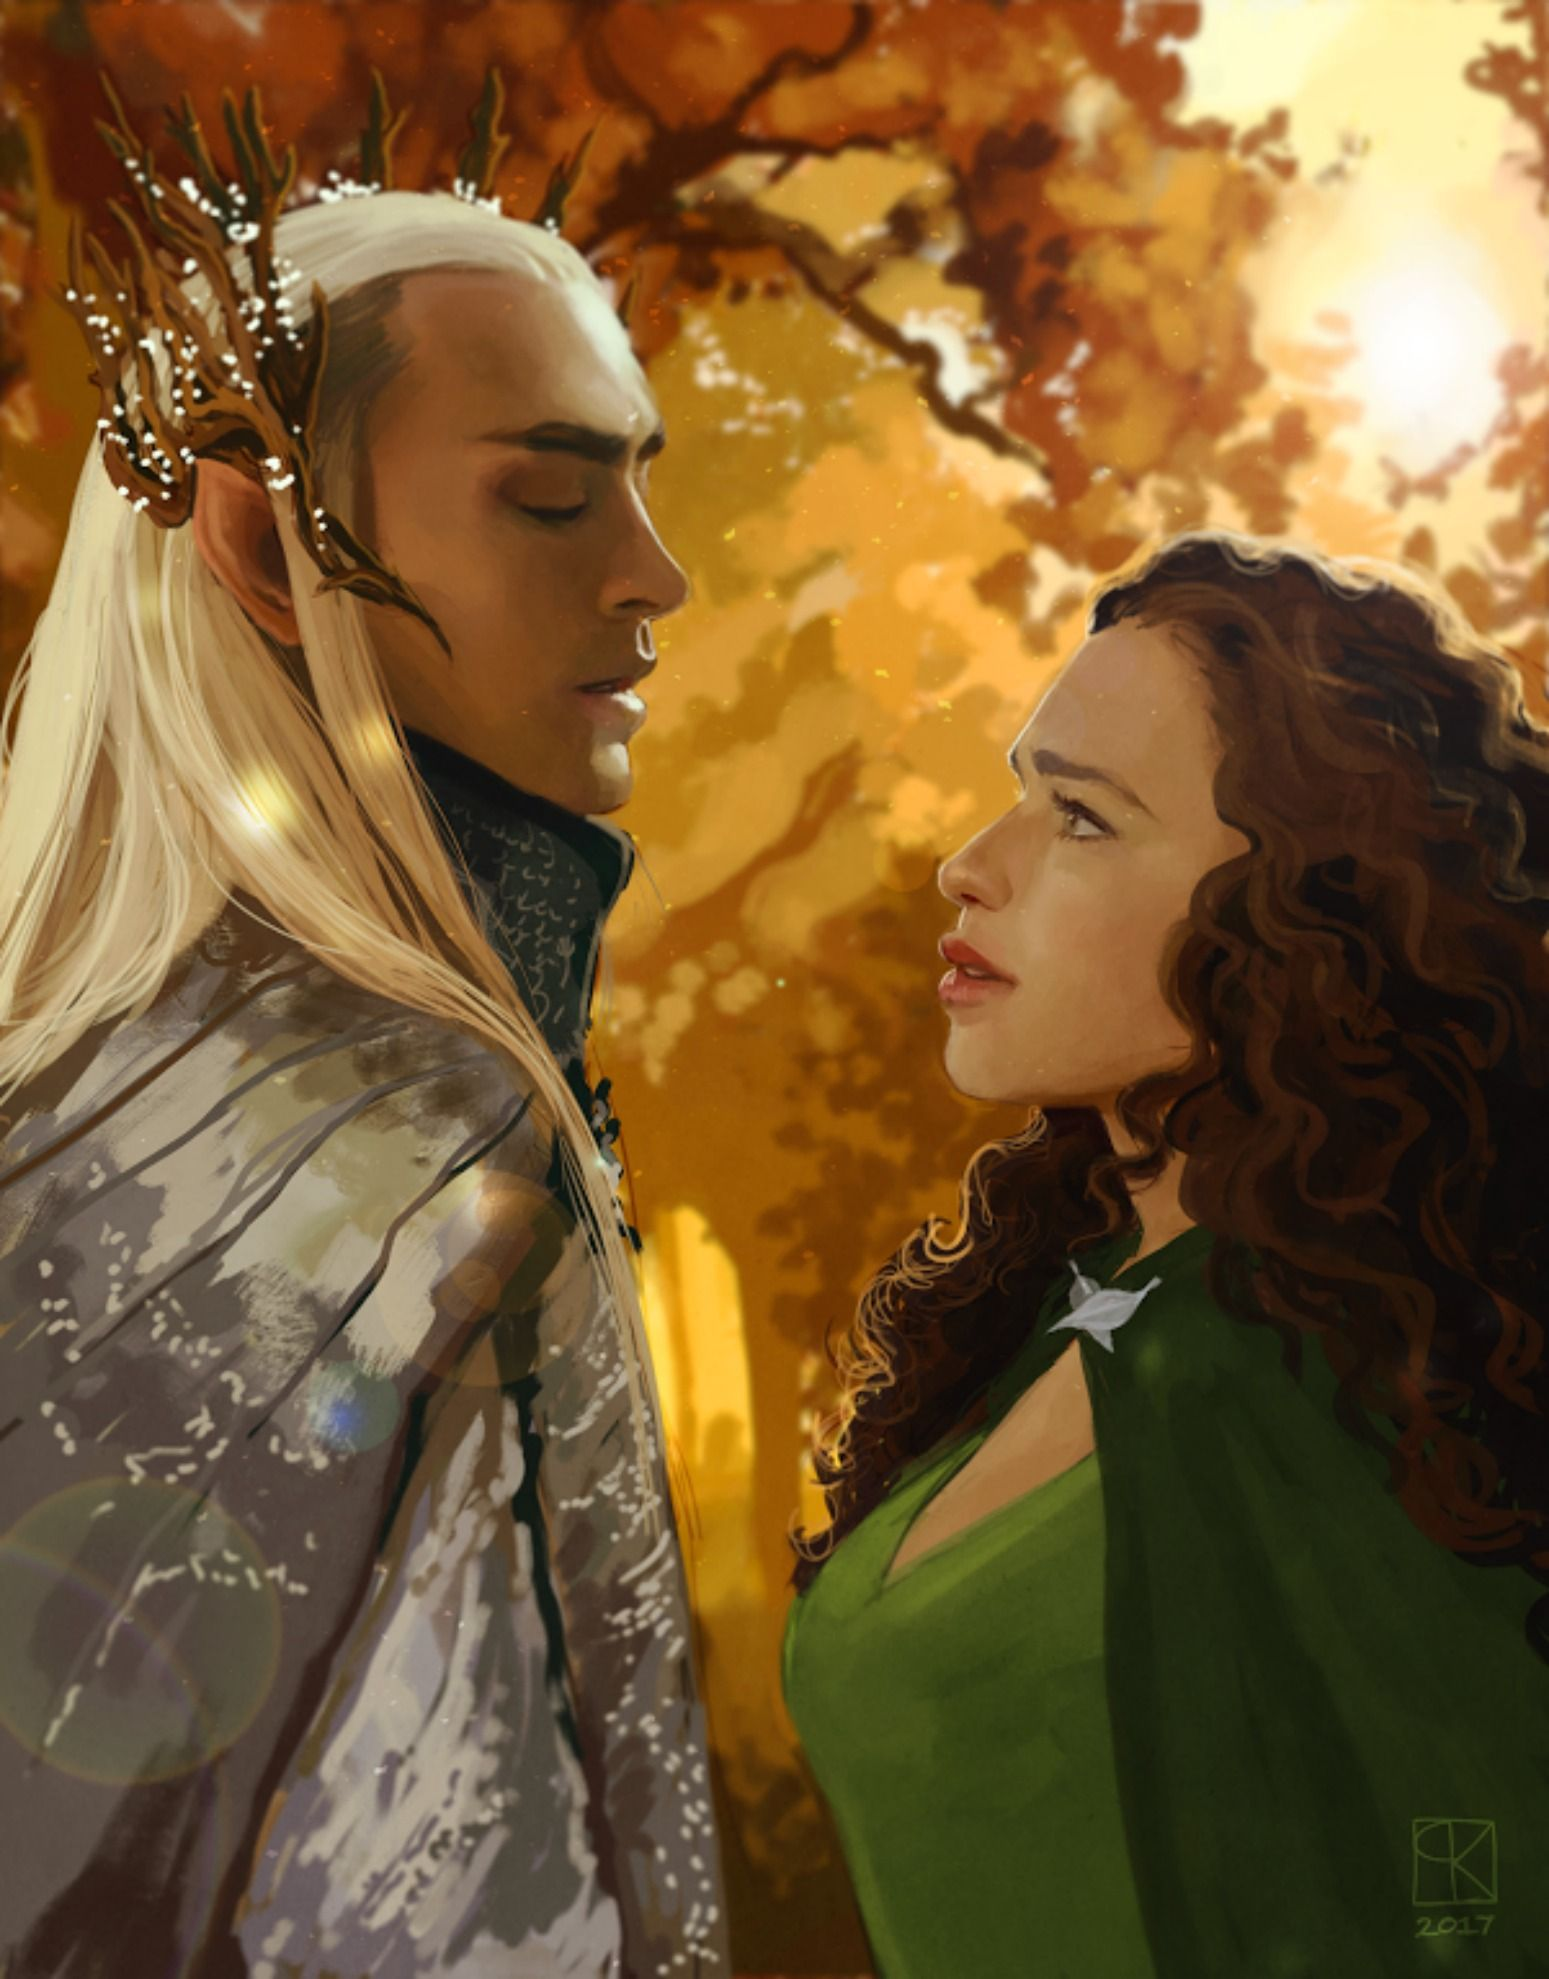 This is a scene from the Thranduil fanfic, Stars of Varda. Art is by Lucy Plowe, or masseffxt, on Tumblr. Read the story here! https://www.fanfiction.net/s/11794620/1/Stars-of-Varda https://www.wattpad.com/221597631-stars-of-varda-an-elven-love-story-thranduil-1